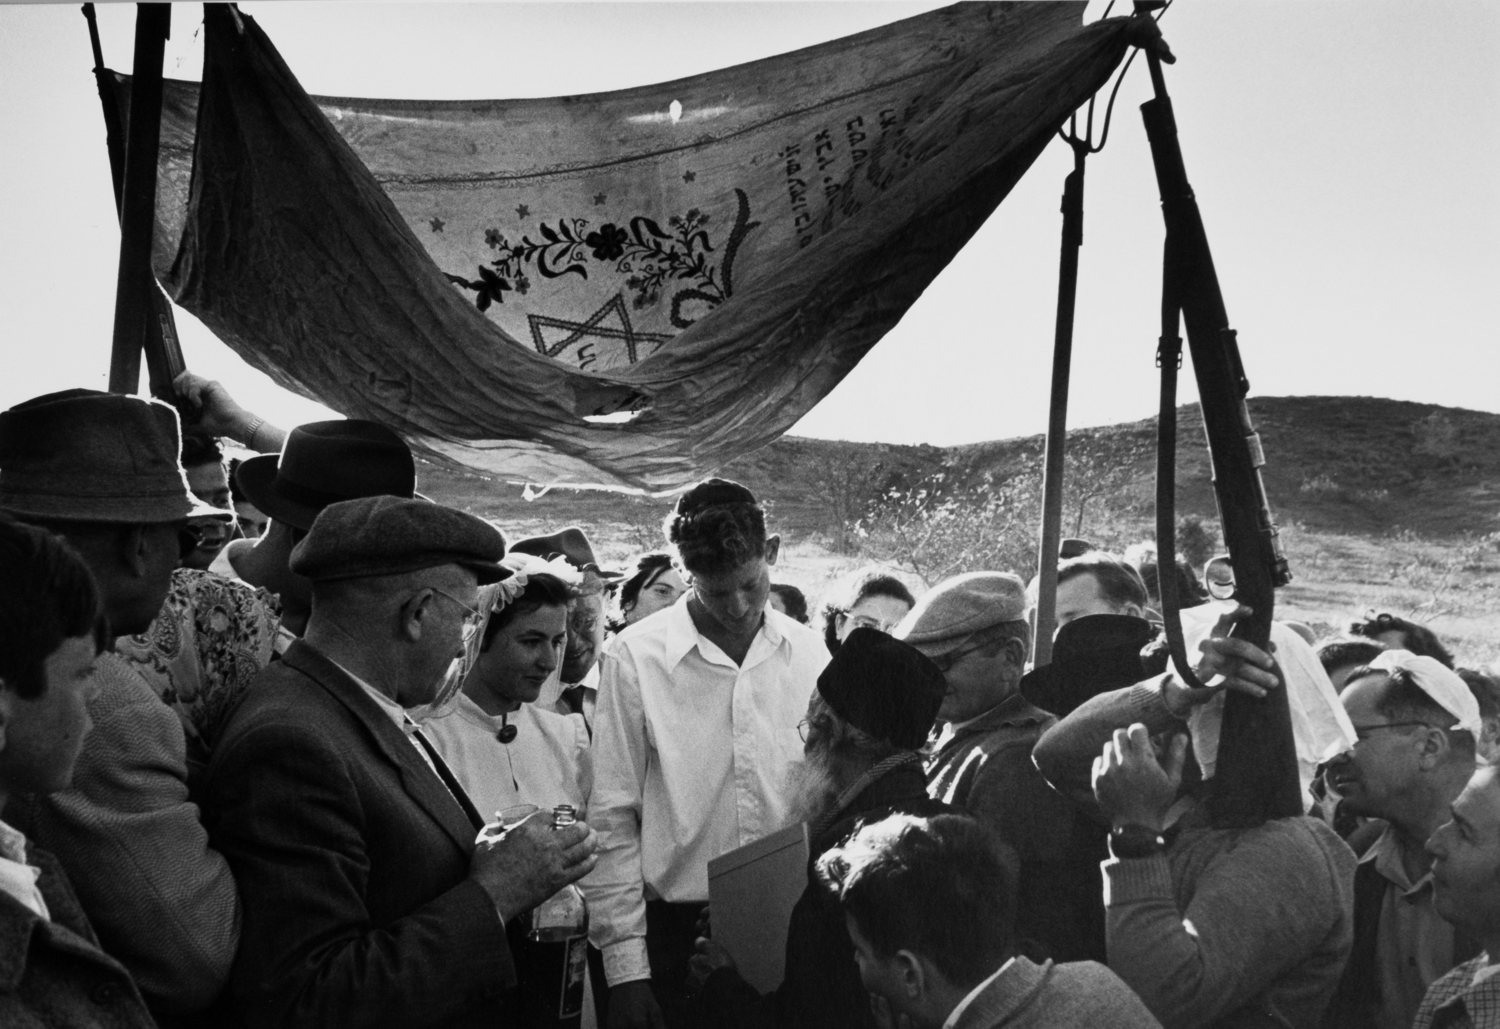 Wedding under an improvised wedding canopy made with guns and pitchforks, Israel